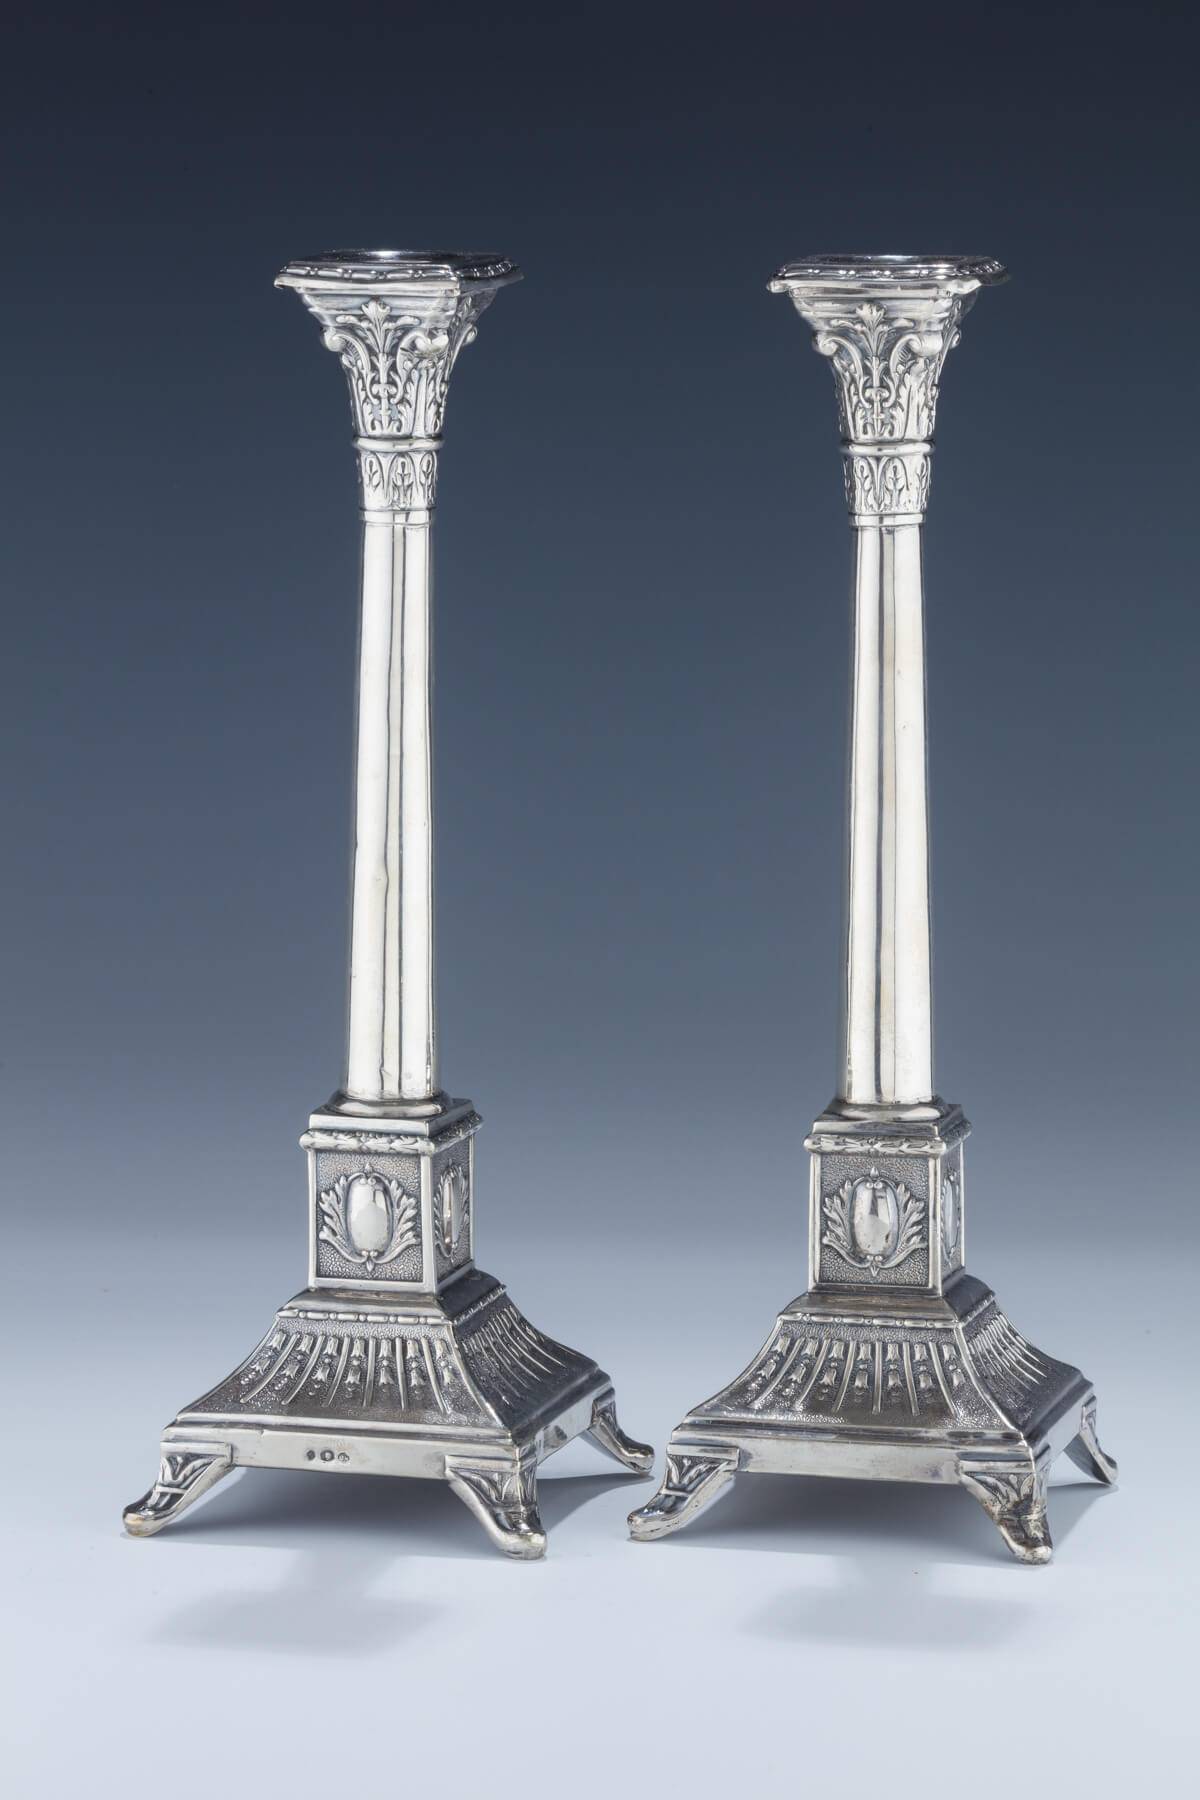 075. A Pair of Silver Candlesticks